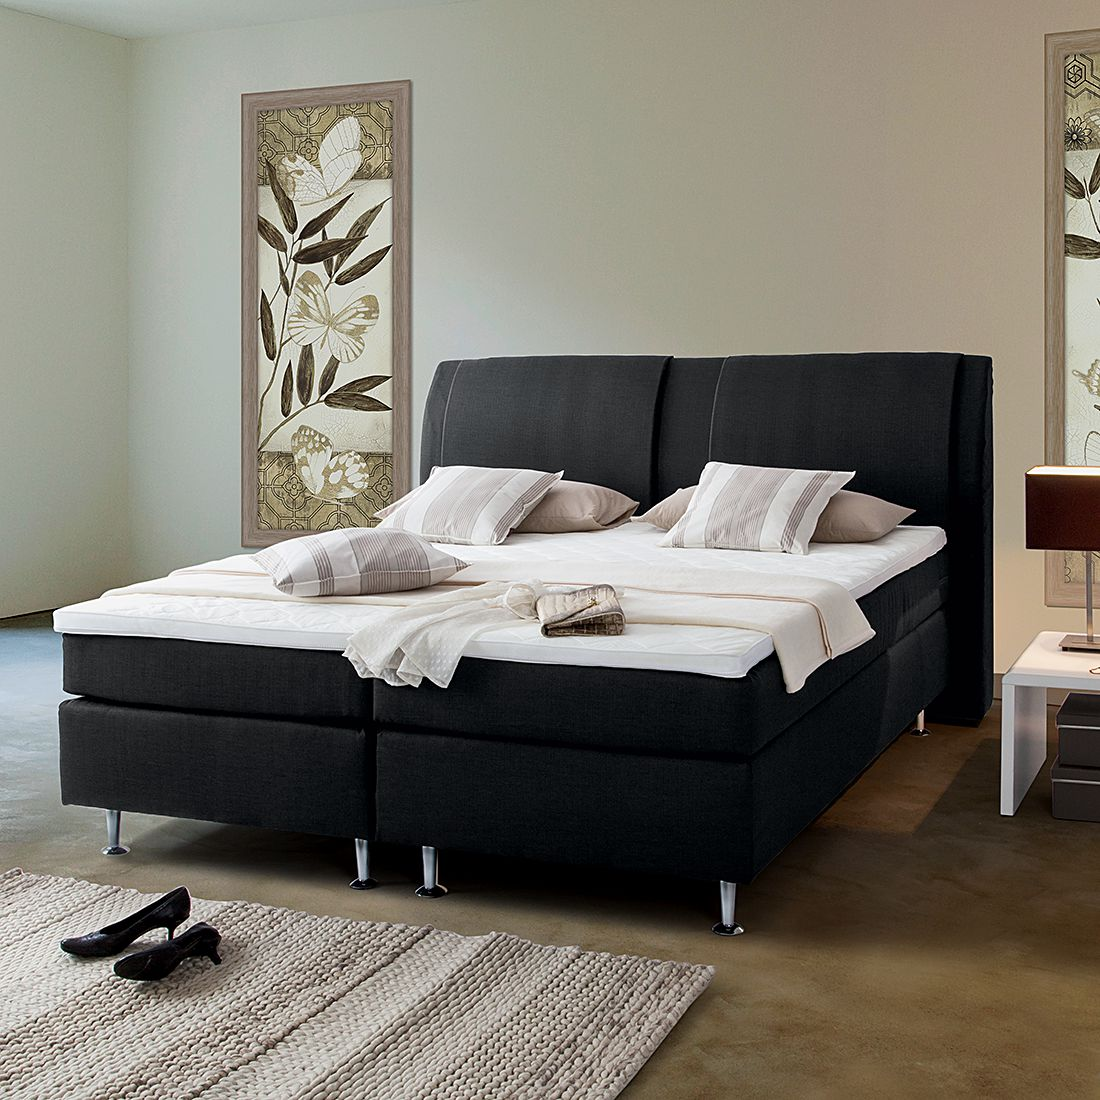 25 sparen boxspringbett bjane ab 599 99 cherry m bel home24. Black Bedroom Furniture Sets. Home Design Ideas